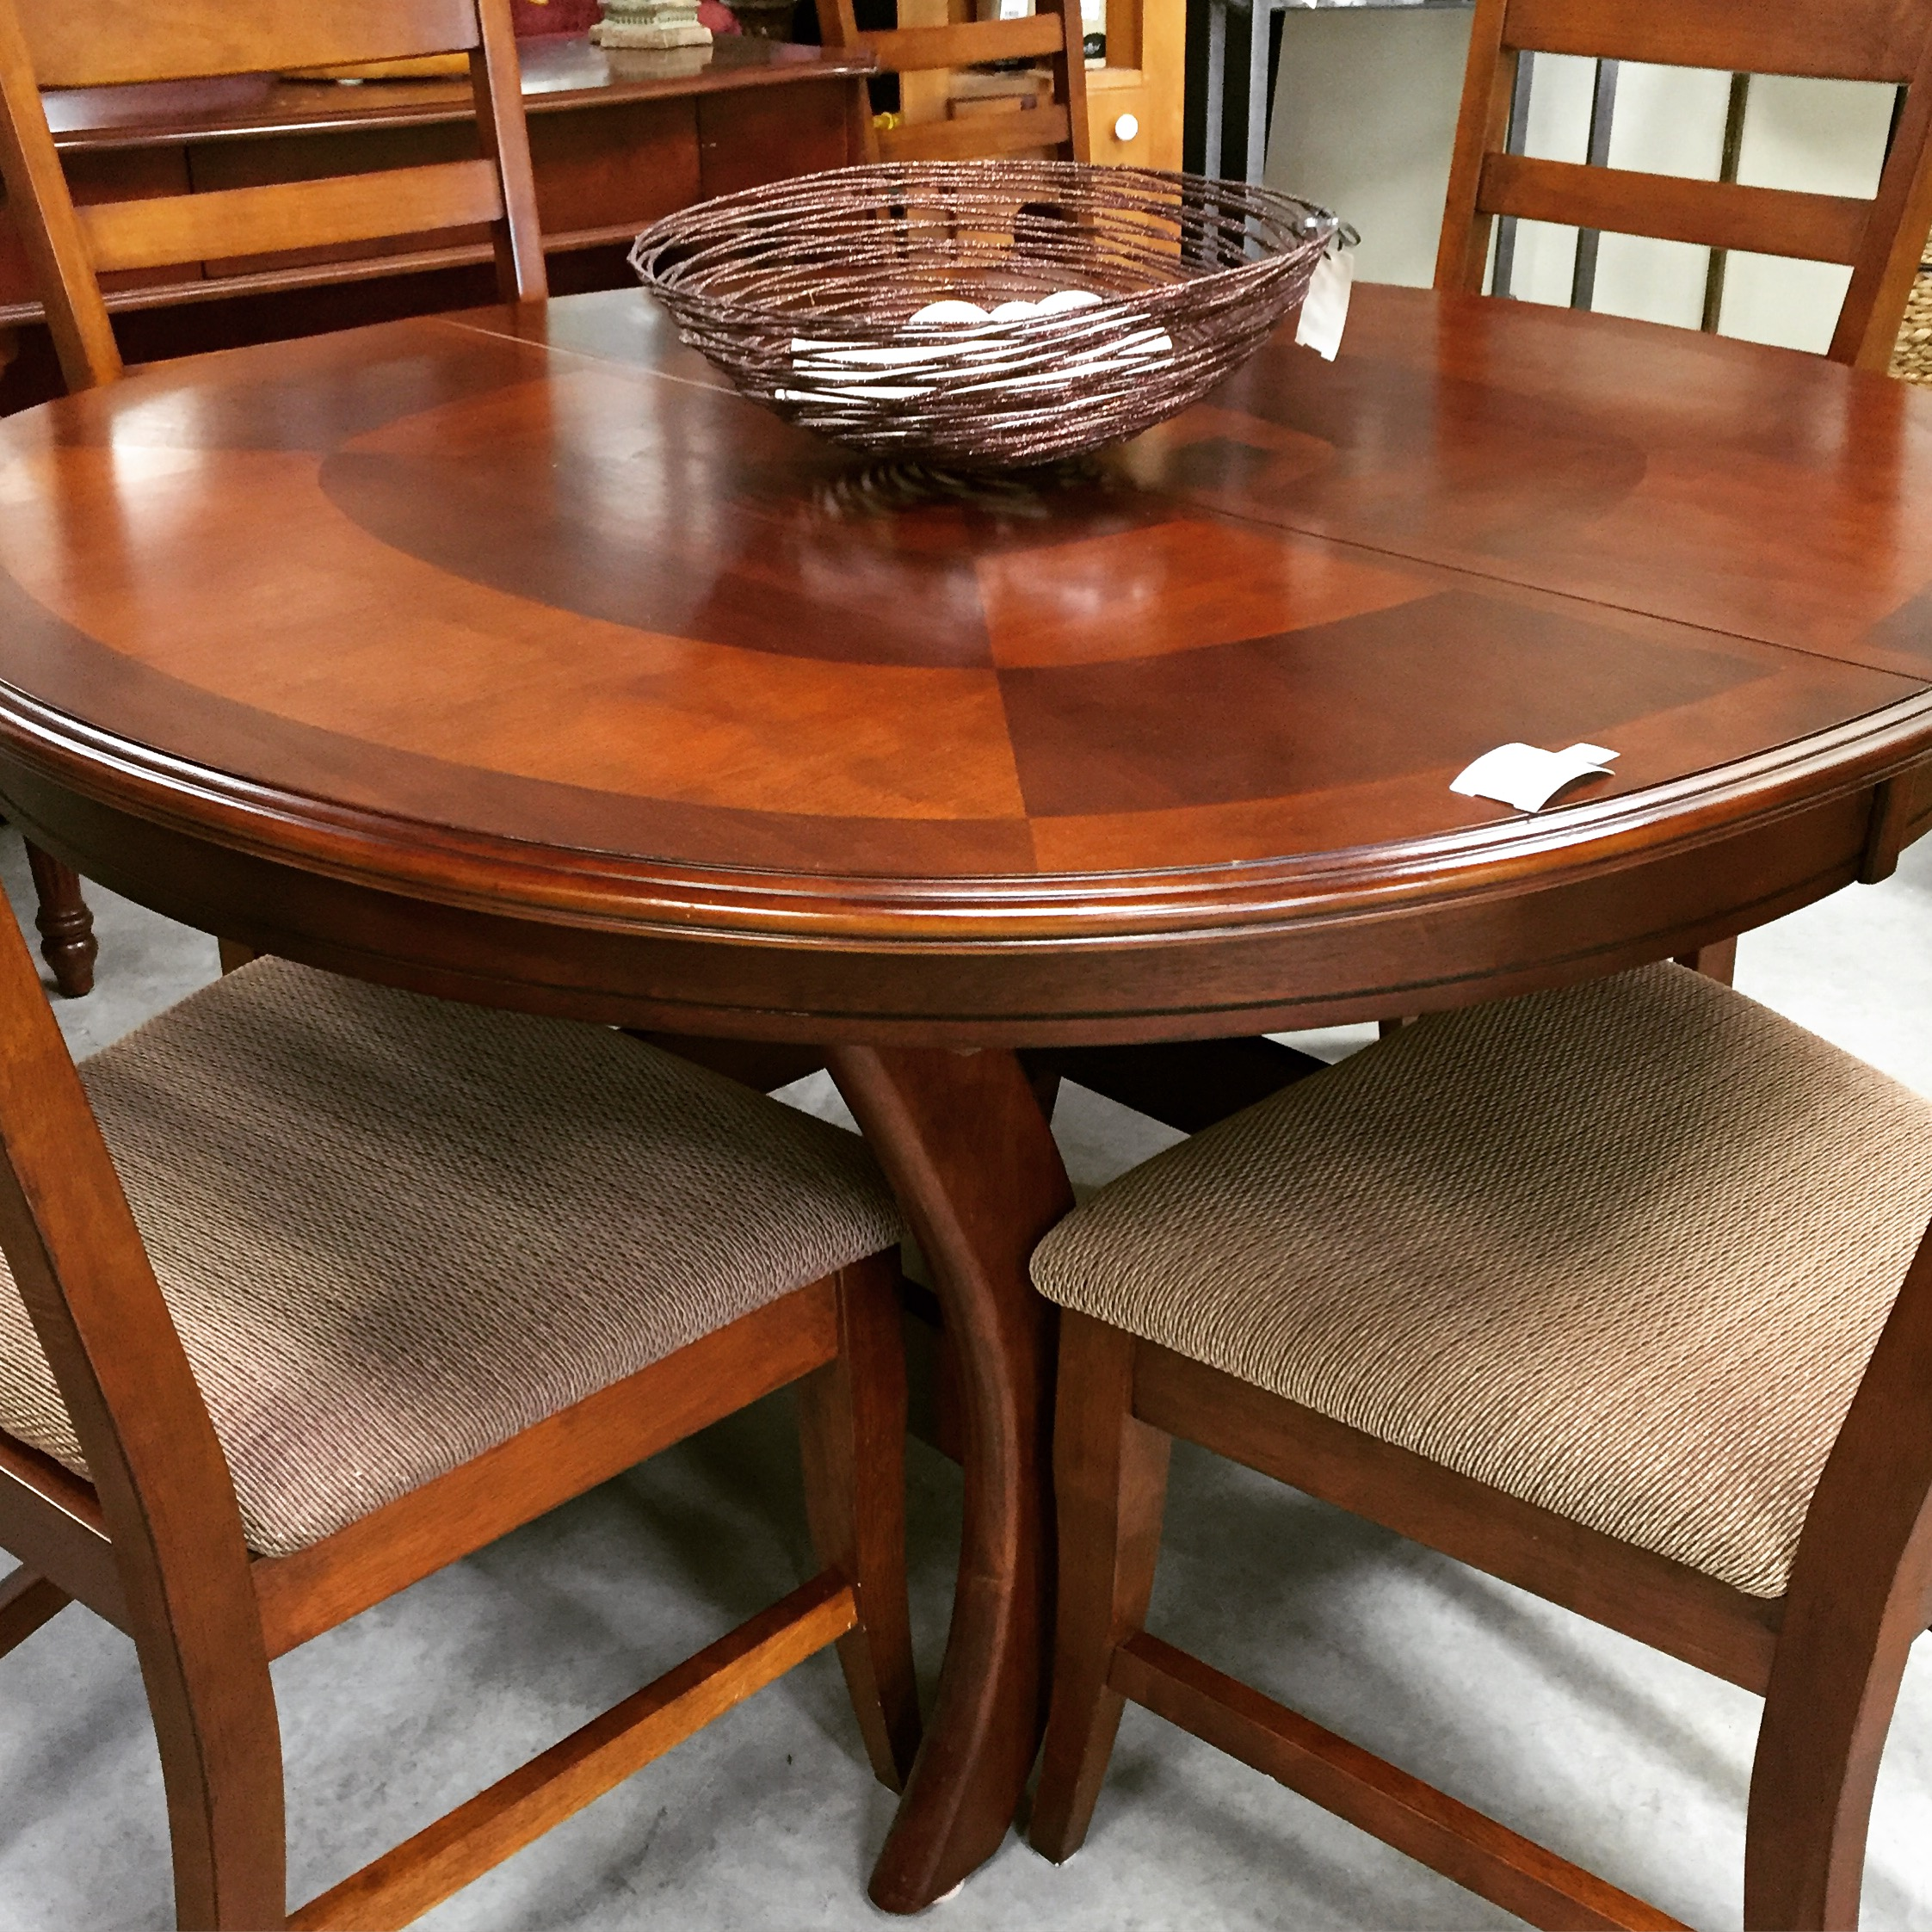 48 Round Wood Inlay Dining Set C W 6 Upholstered Wood Chairs And 1 X 18